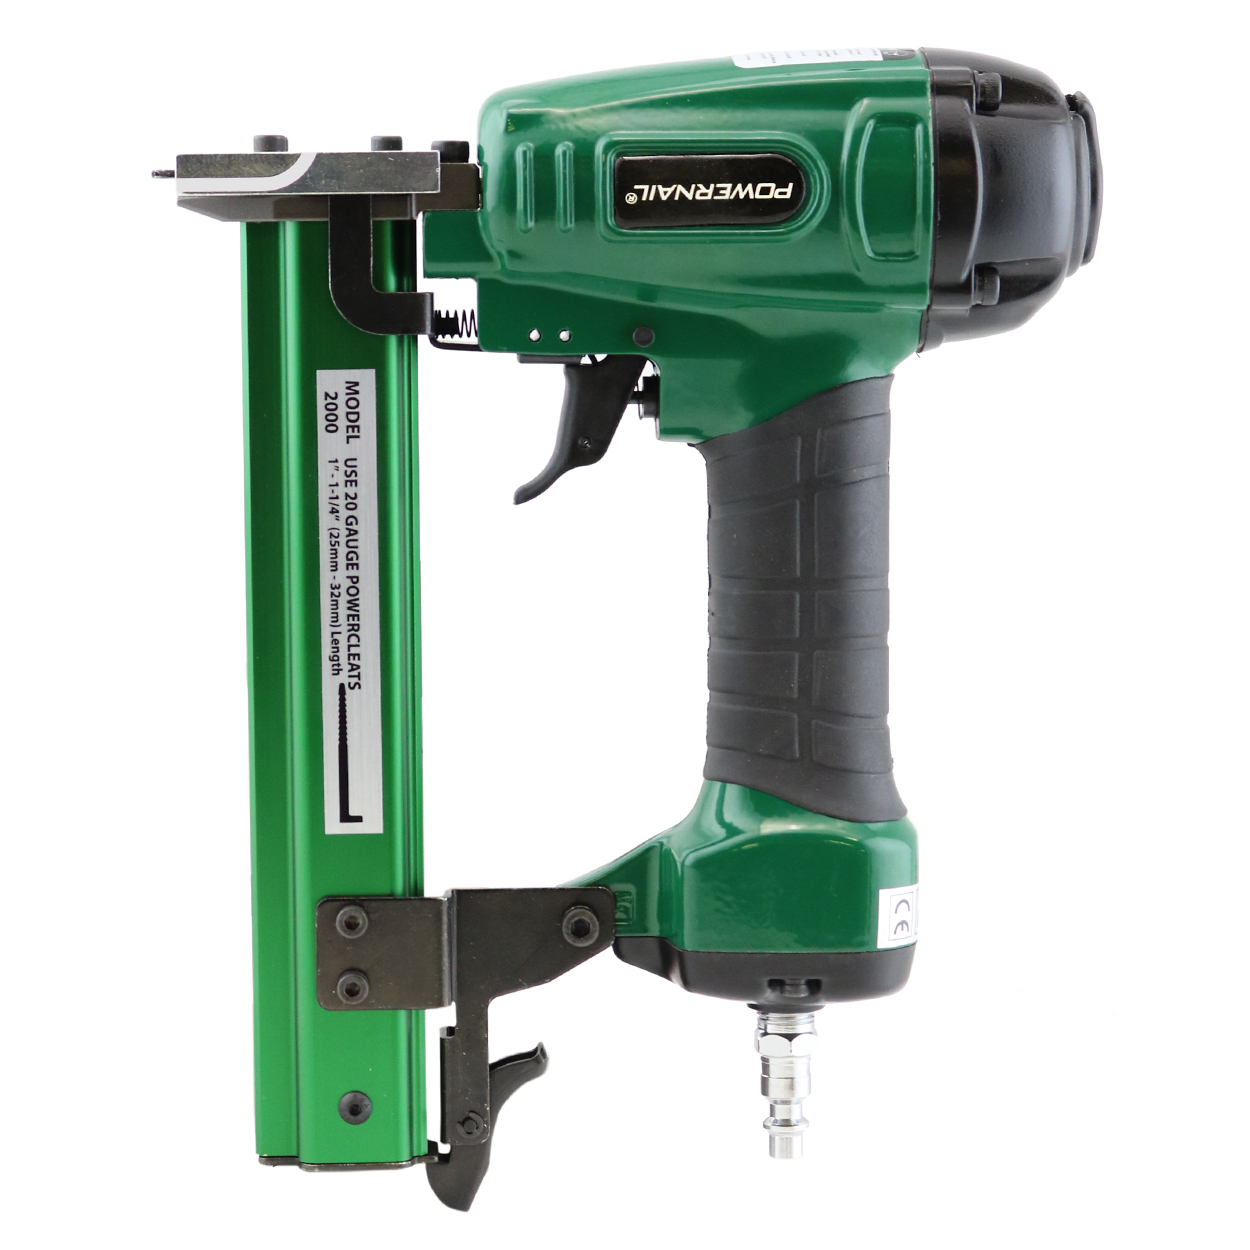 2000TN – Pneumatic 20-Gauge L-Cleat Top Nailer